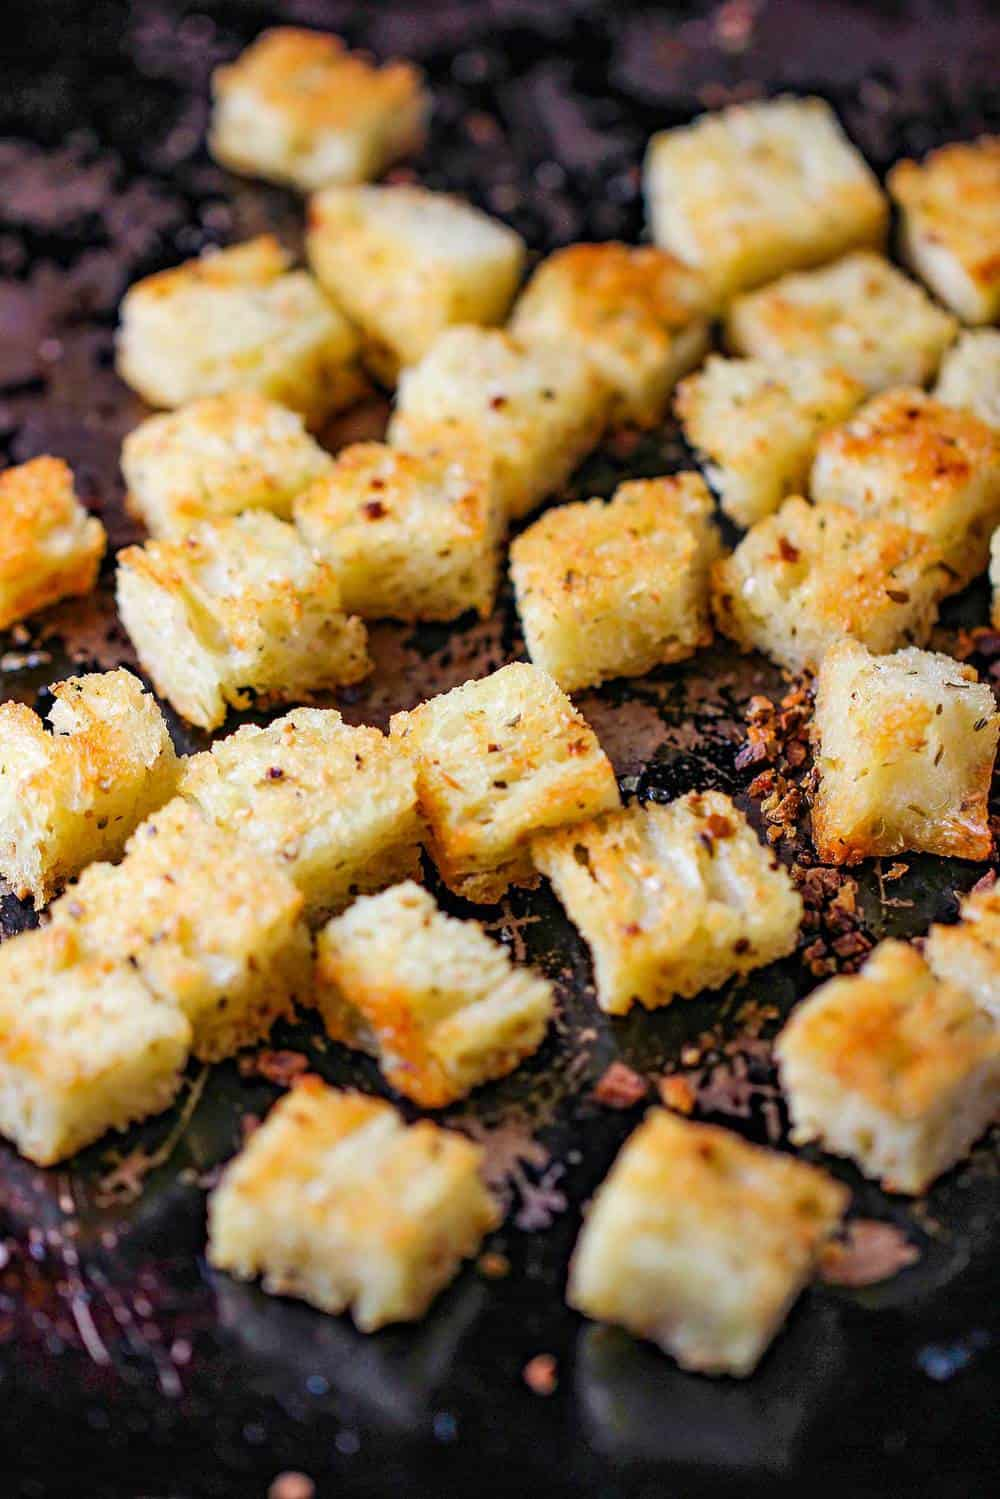 Baked crispy croutons on a baking sheet